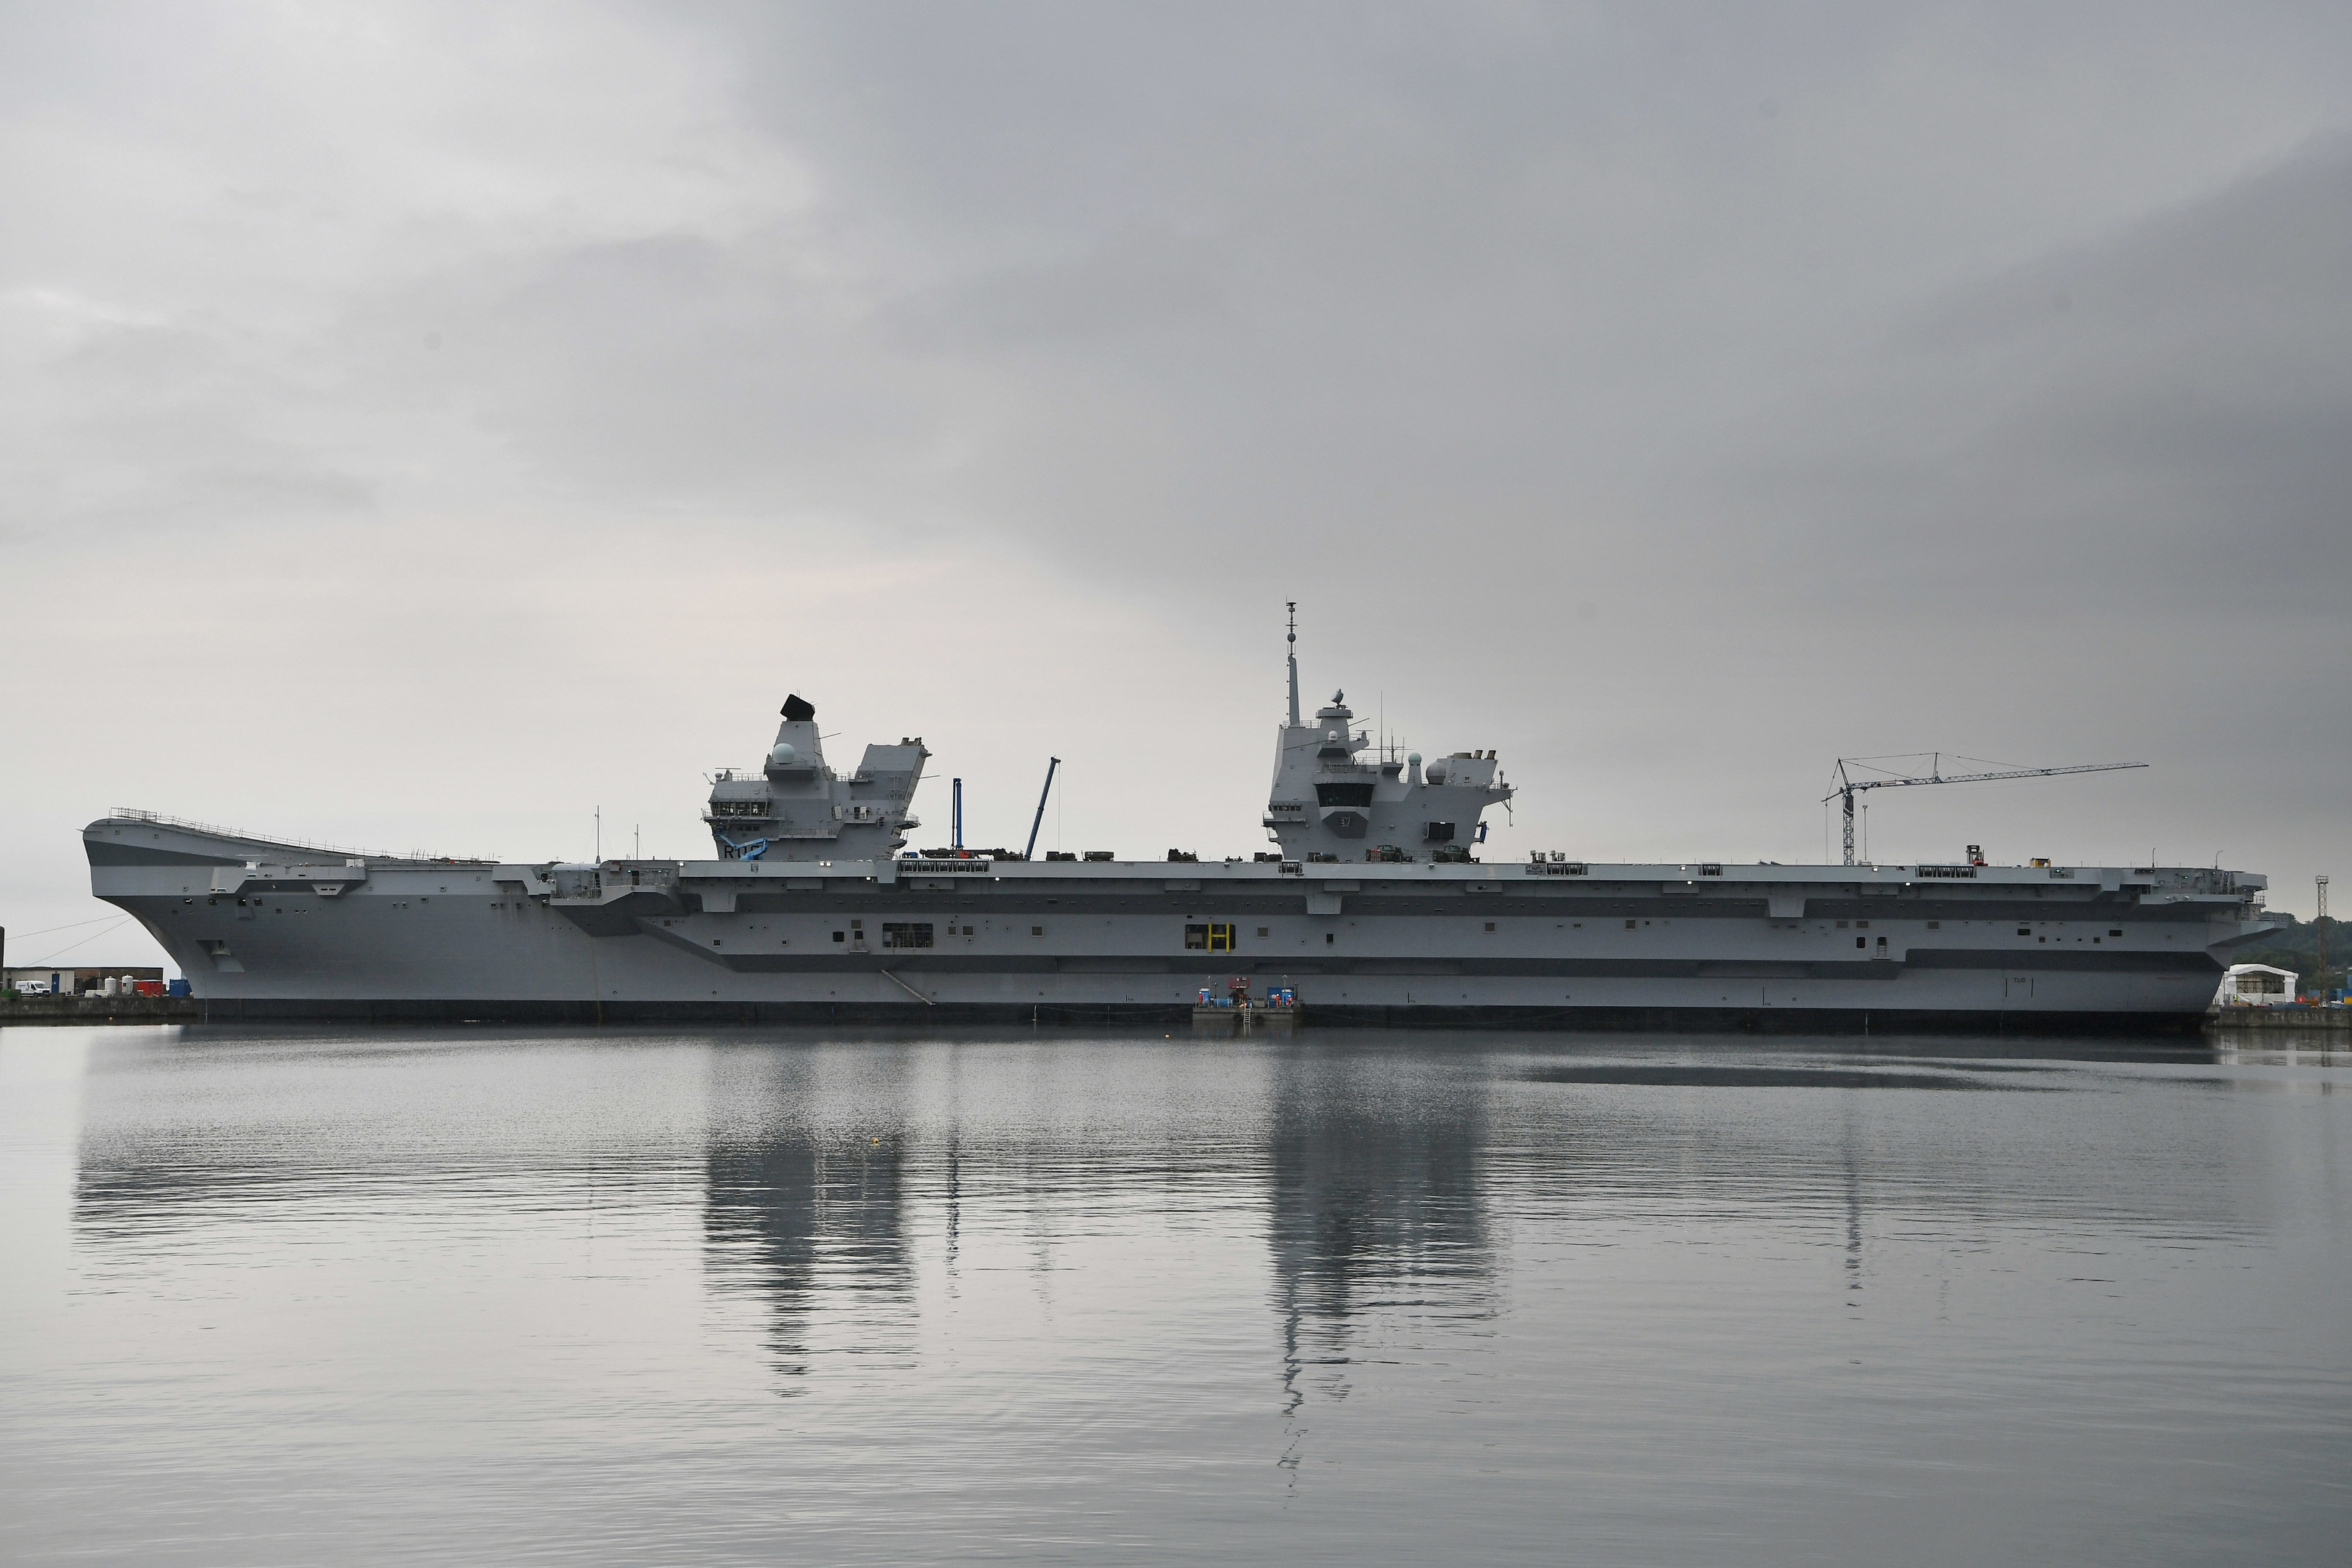 A general view of HMS Queen Elizabeth Aircraft Carrier.